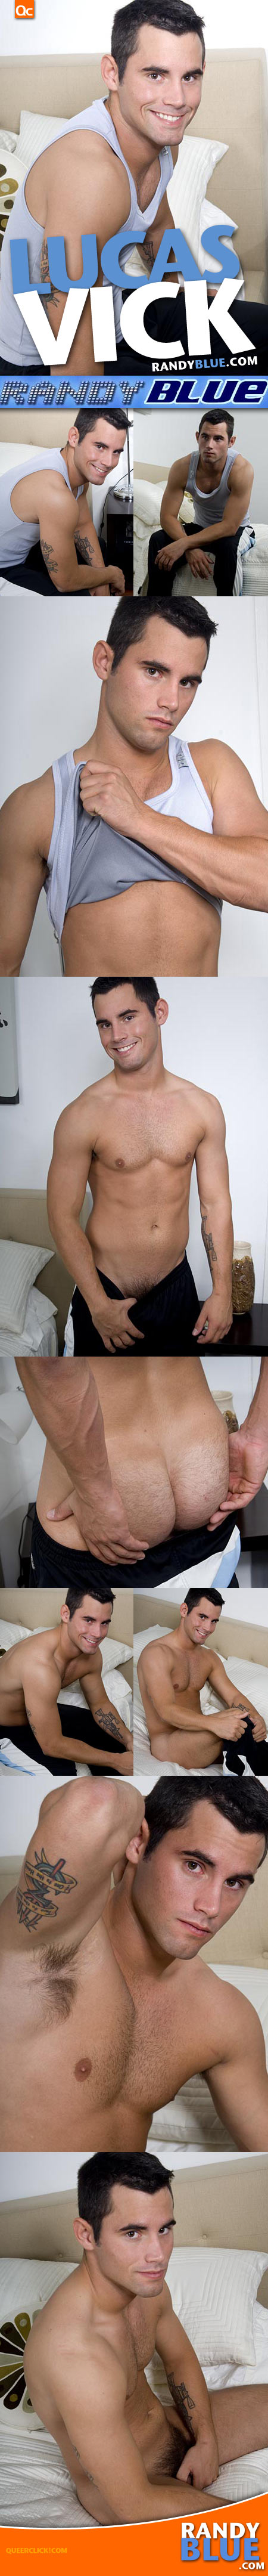 Lucas Vick at RandyBlue.com